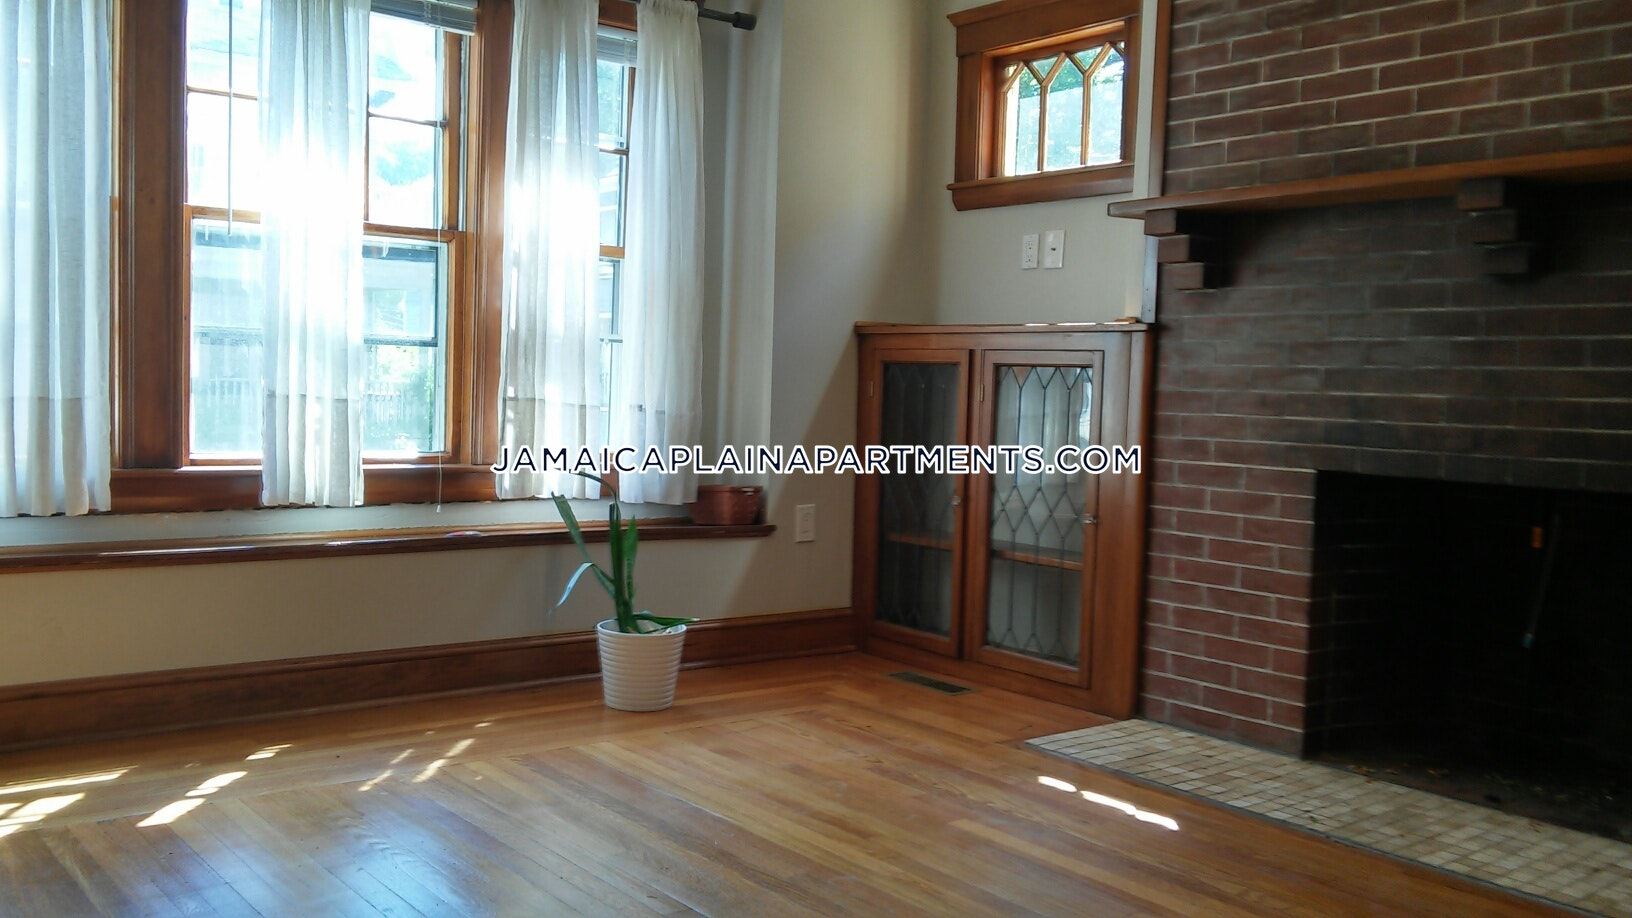 3 Bedroom Apartment For Rent In Boston Ma 28 Images Cute 1 Bedroom Apartment Downtown Boston